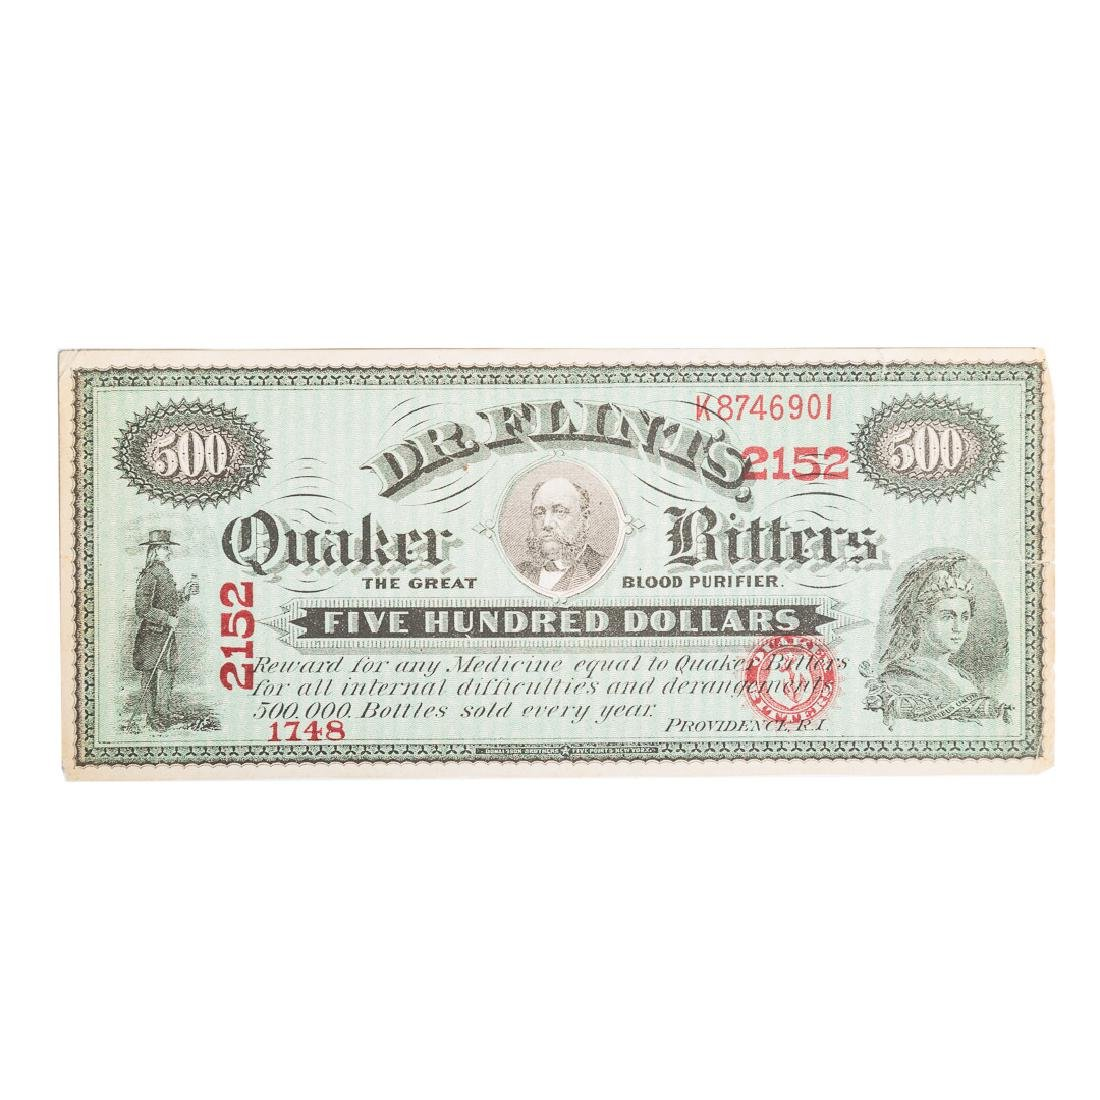 [US] Dr. Flint's Quaker Bitters $500 Advertising